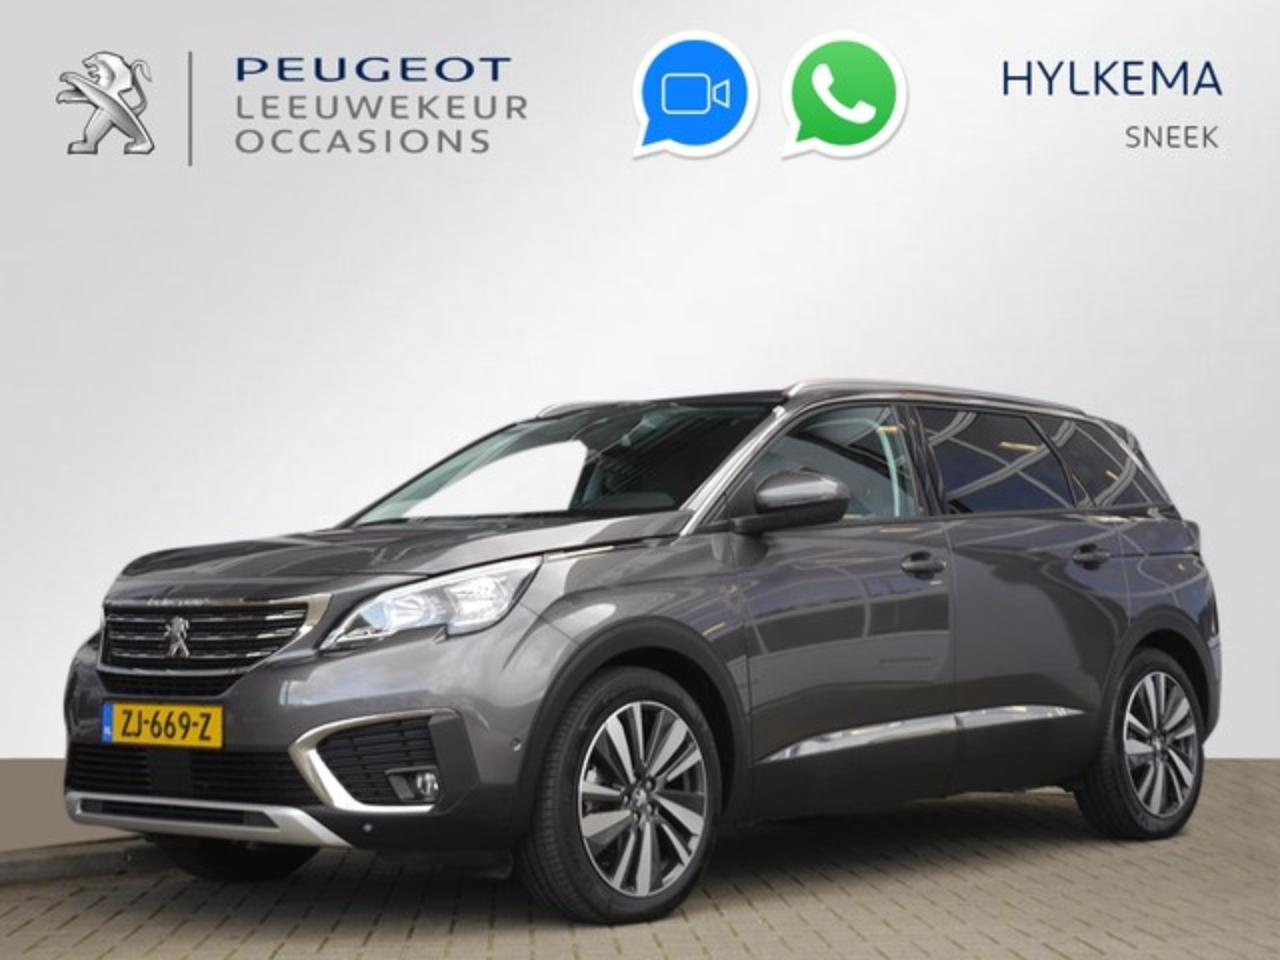 Peugeot 5008 1.5 BlueHDi 130pk BLUE LEASE PREMIUM EAT8 | AUTOMA